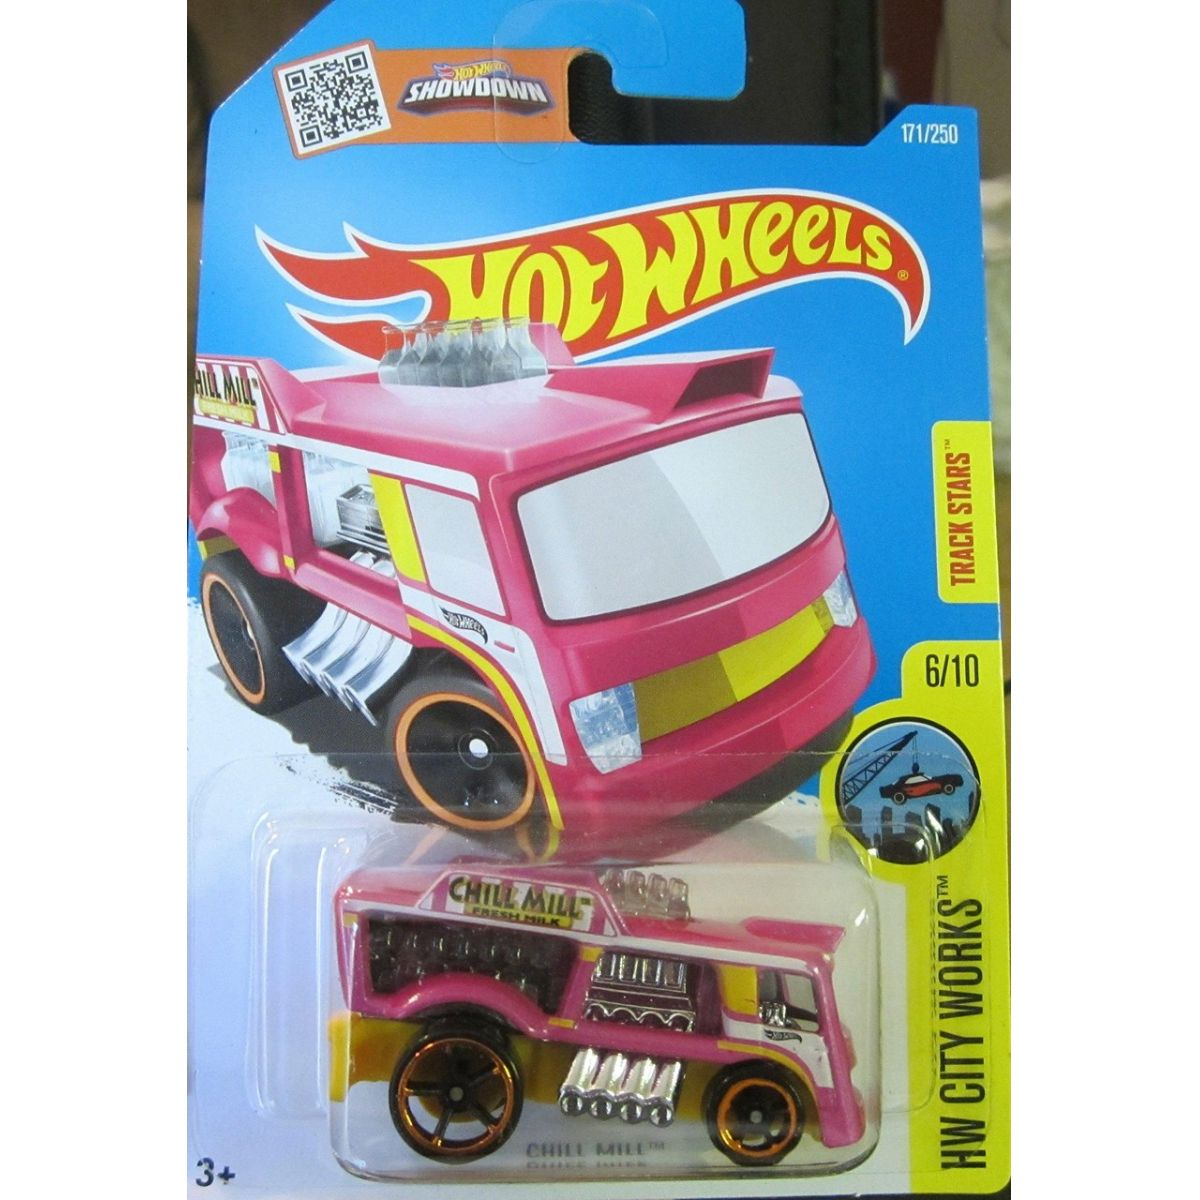 Chill Mill Pink - Hot Wheels